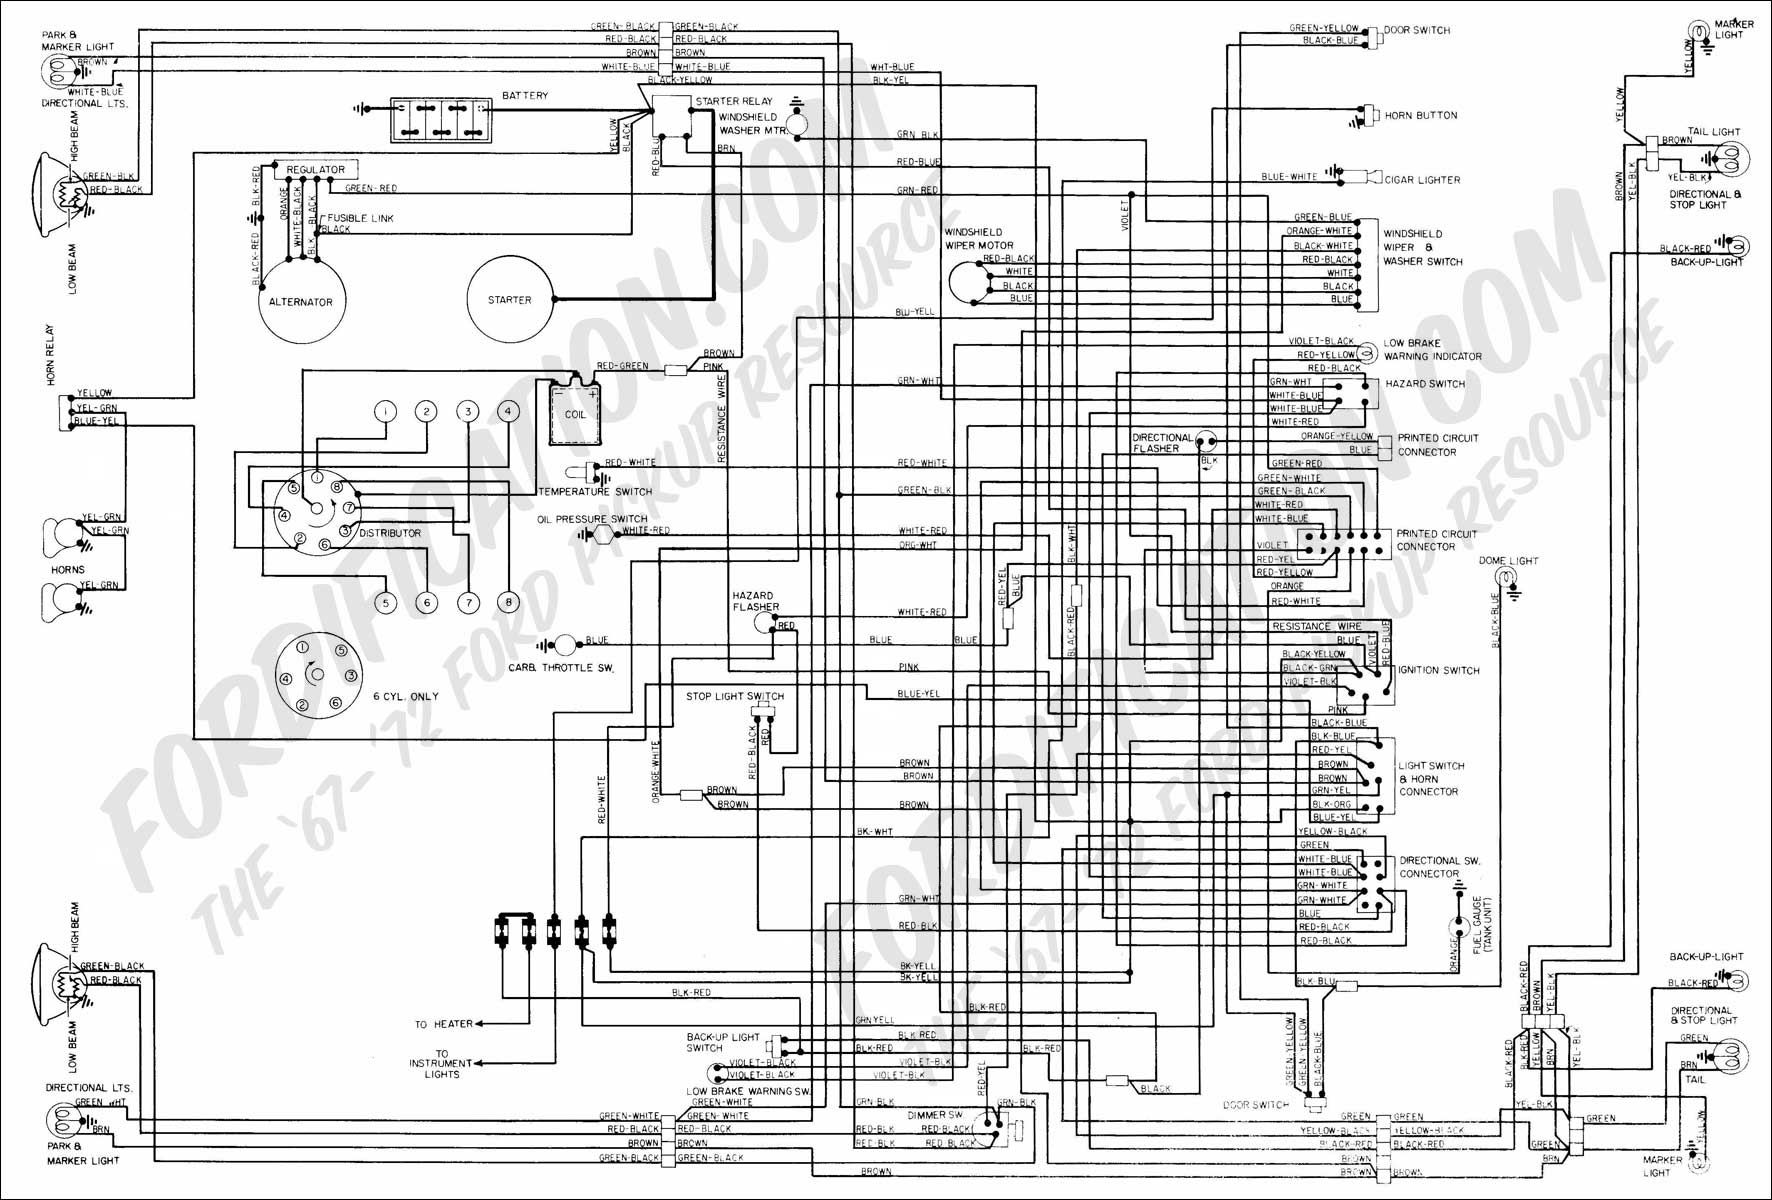 hight resolution of 1995 ford truck wiring diagram illustrations wiring diagrams 99 f250 wiring diagram 07 f250 wiring diagram